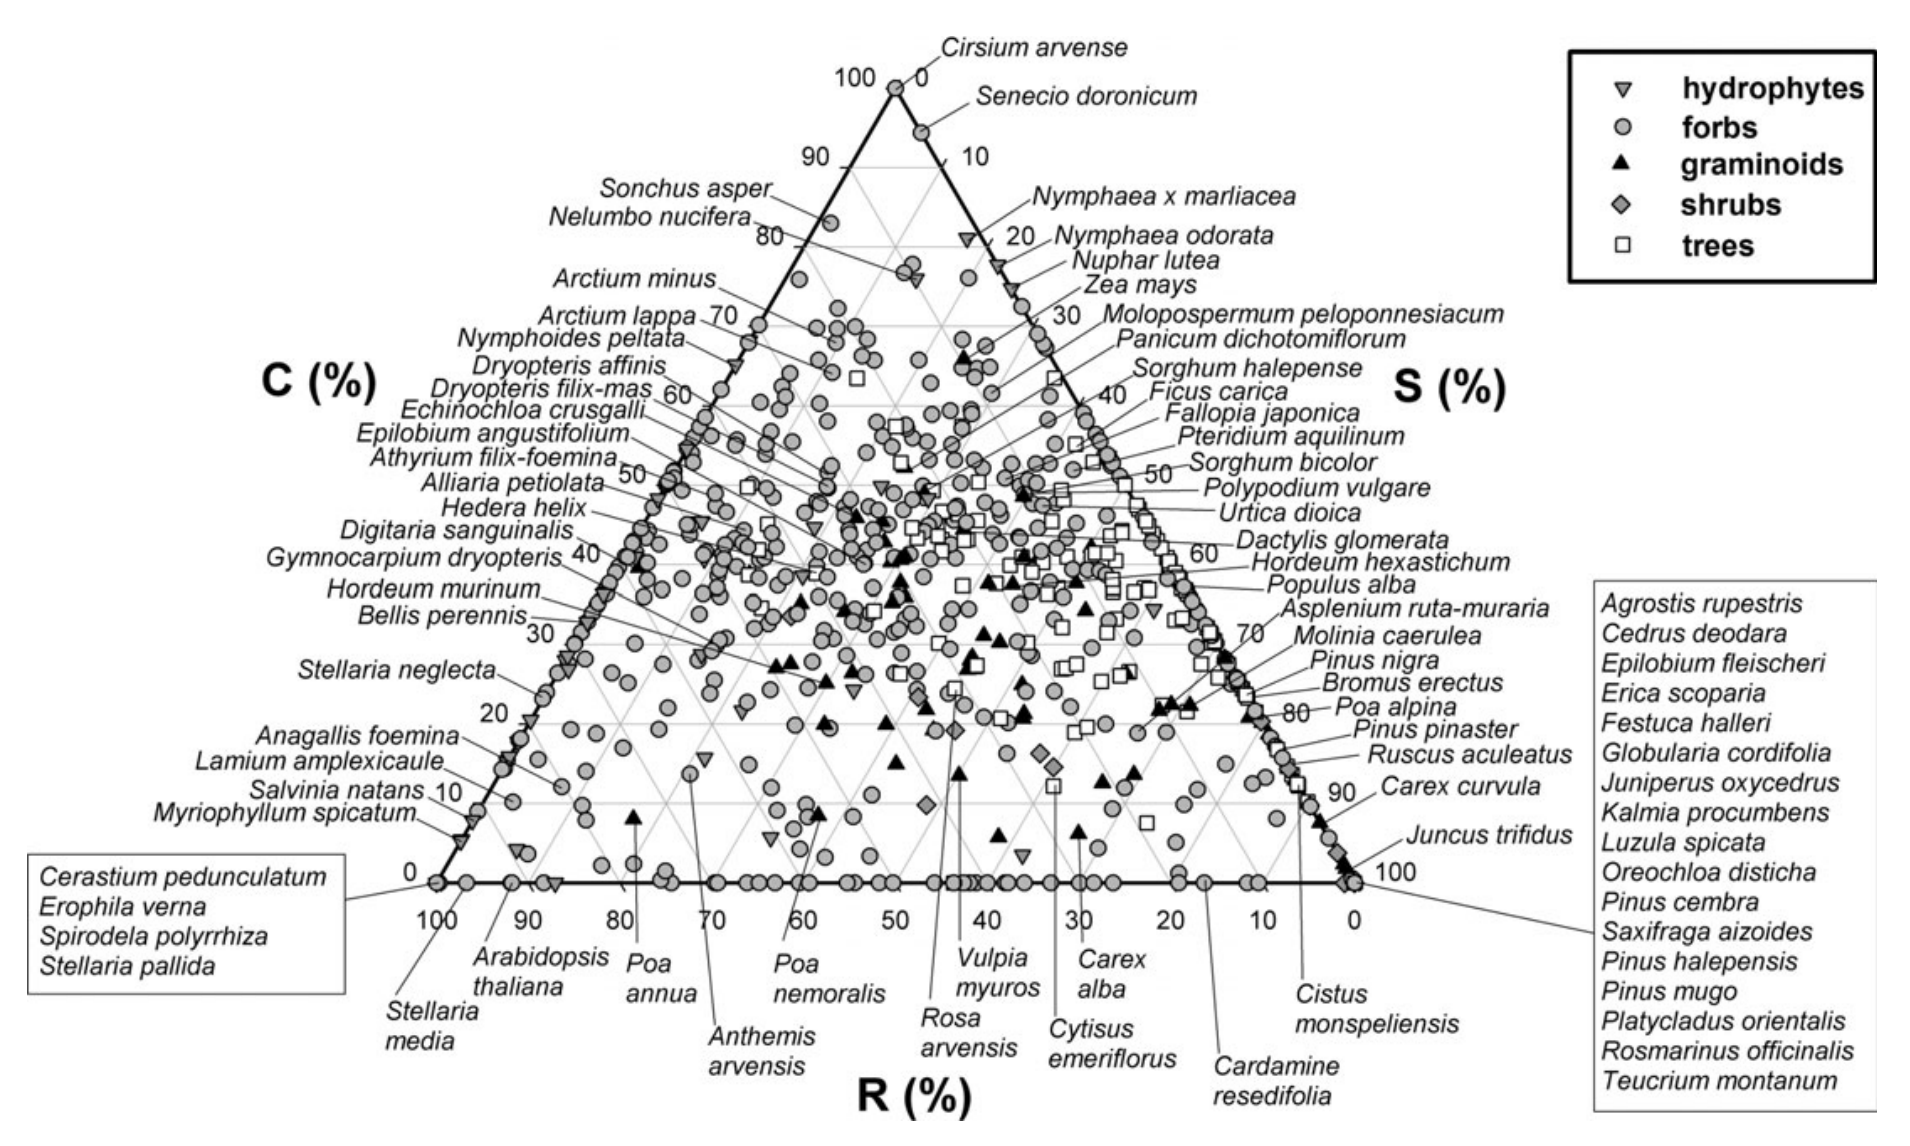 This figure from  Pierce et al. (2013) illustrates how one can classify plants as competitors, stress-tolerant, or pioneers/ruderals. The placement of the symbol equates to what percentage of each strategy each plant exhibits.